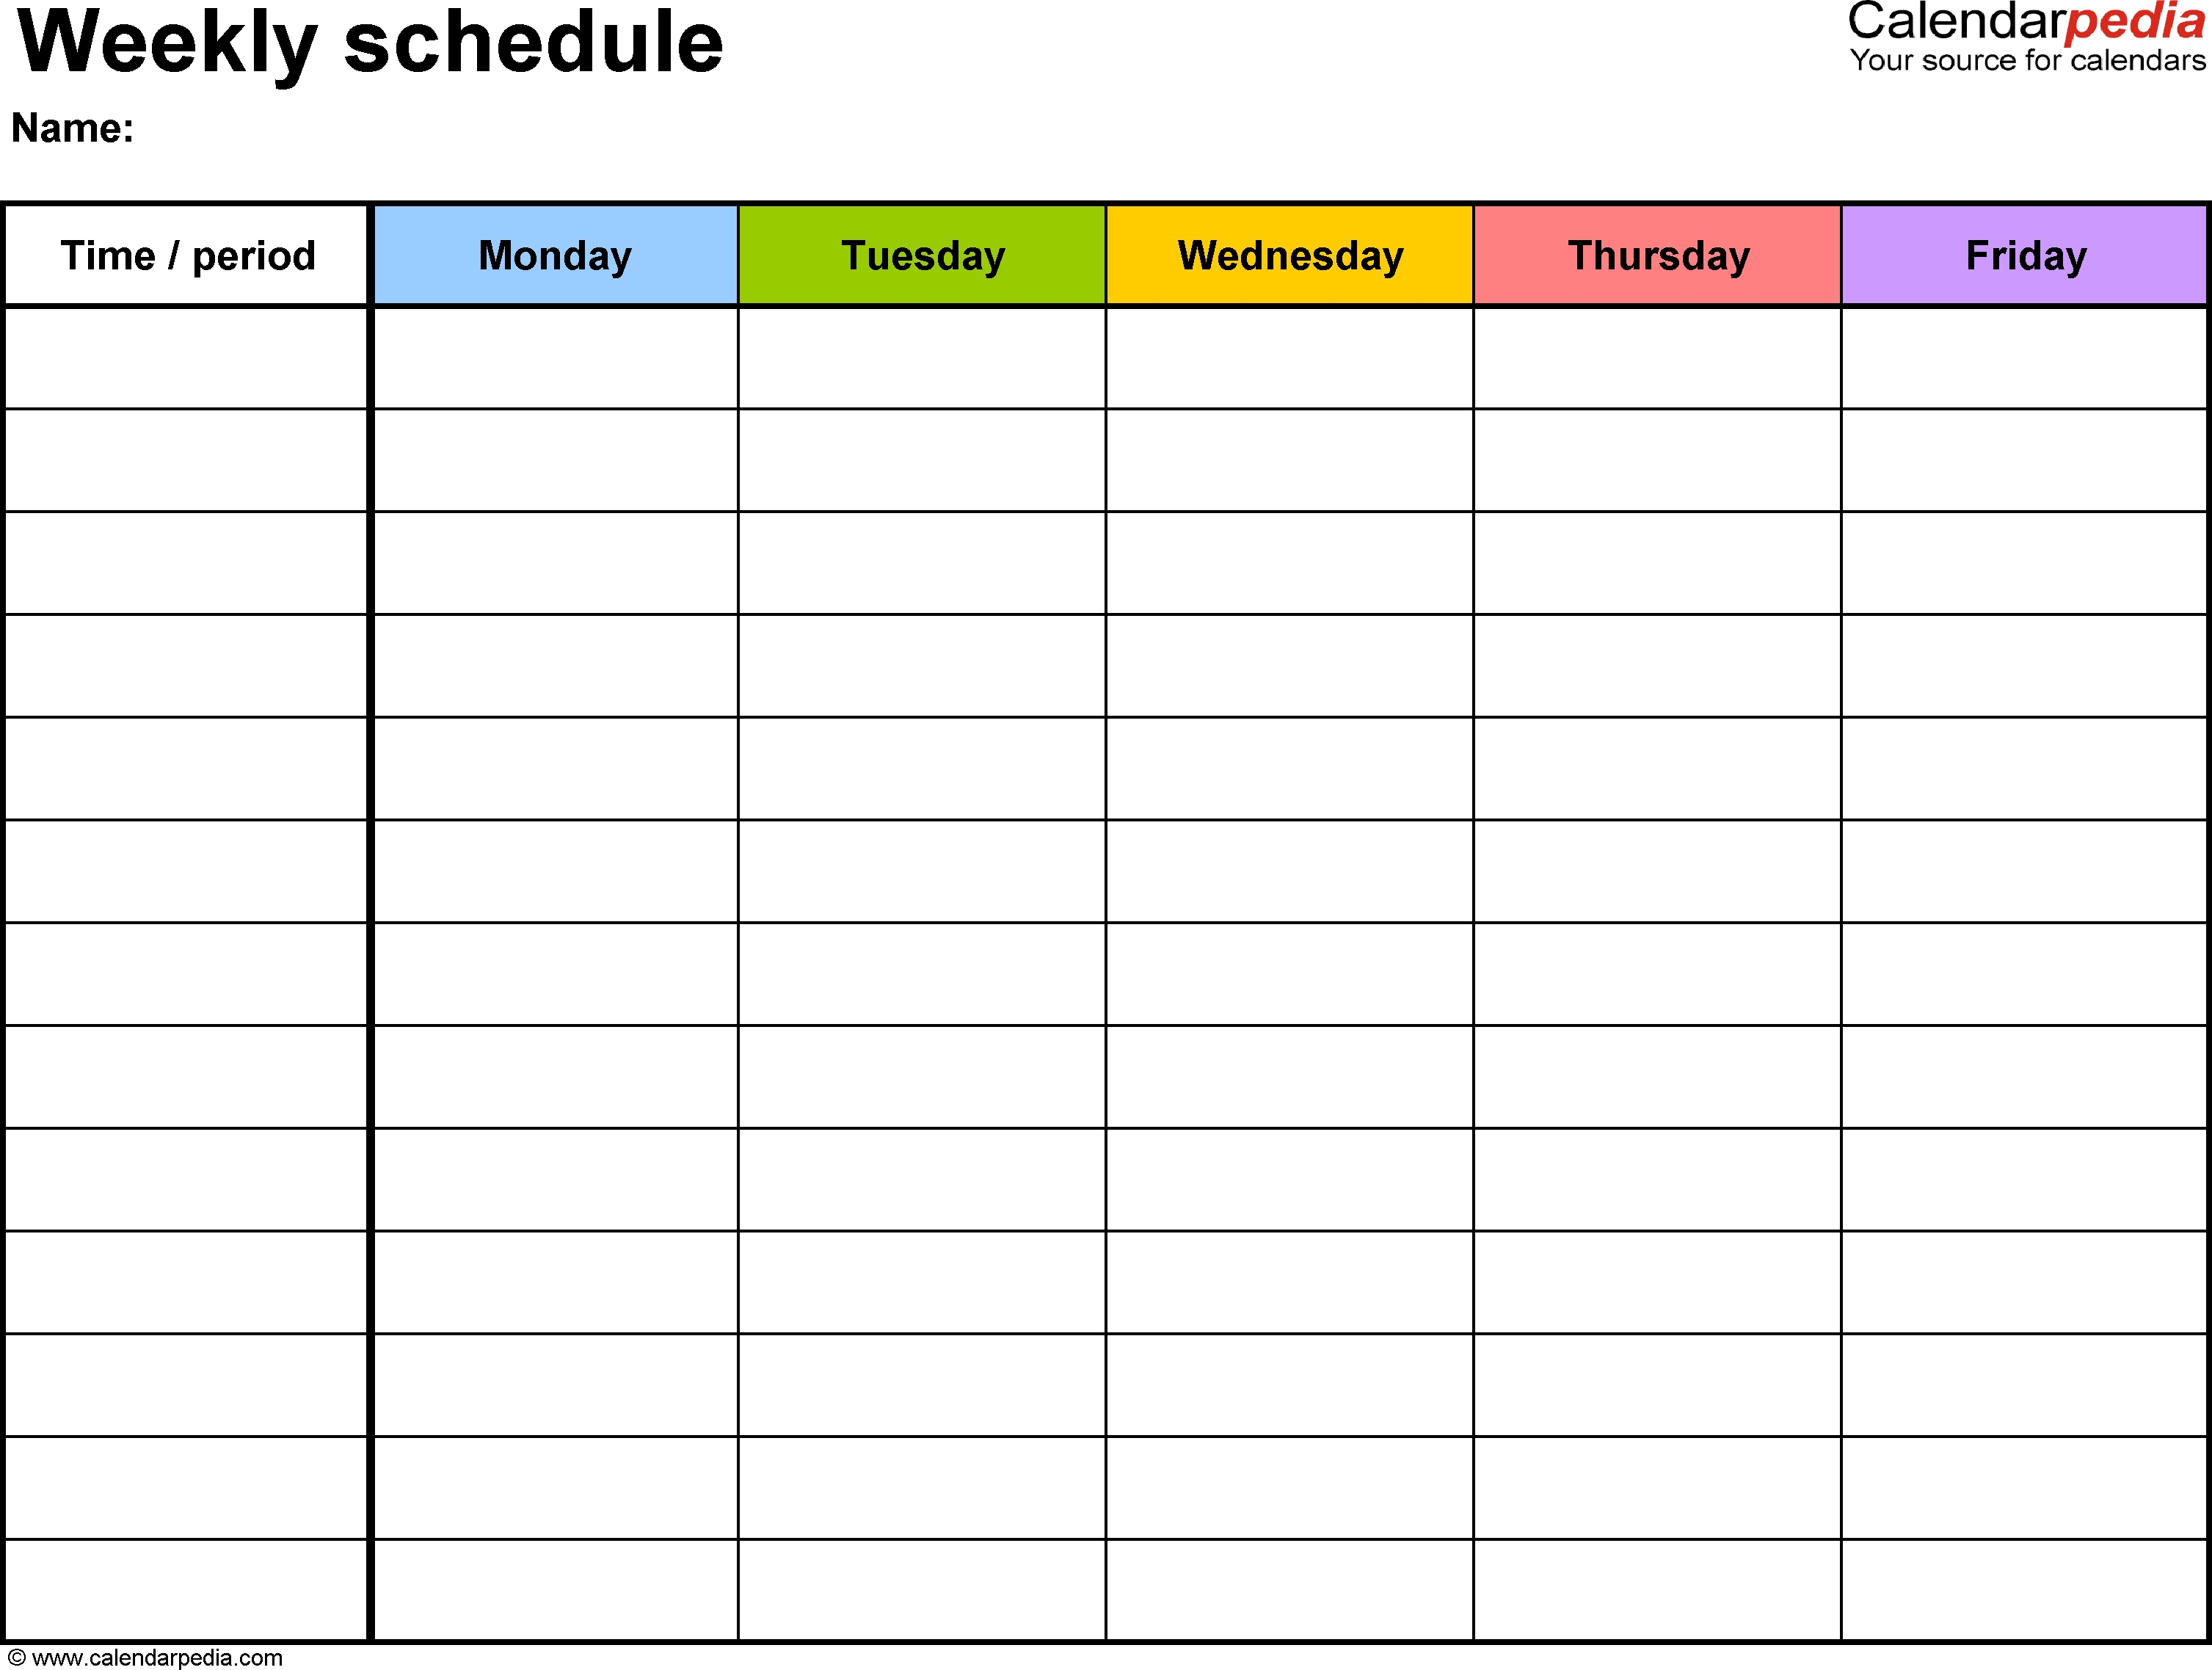 Free Weekly Schedule Templates For Word - 18 Templates for Free Printable Blank Weekly Schedule